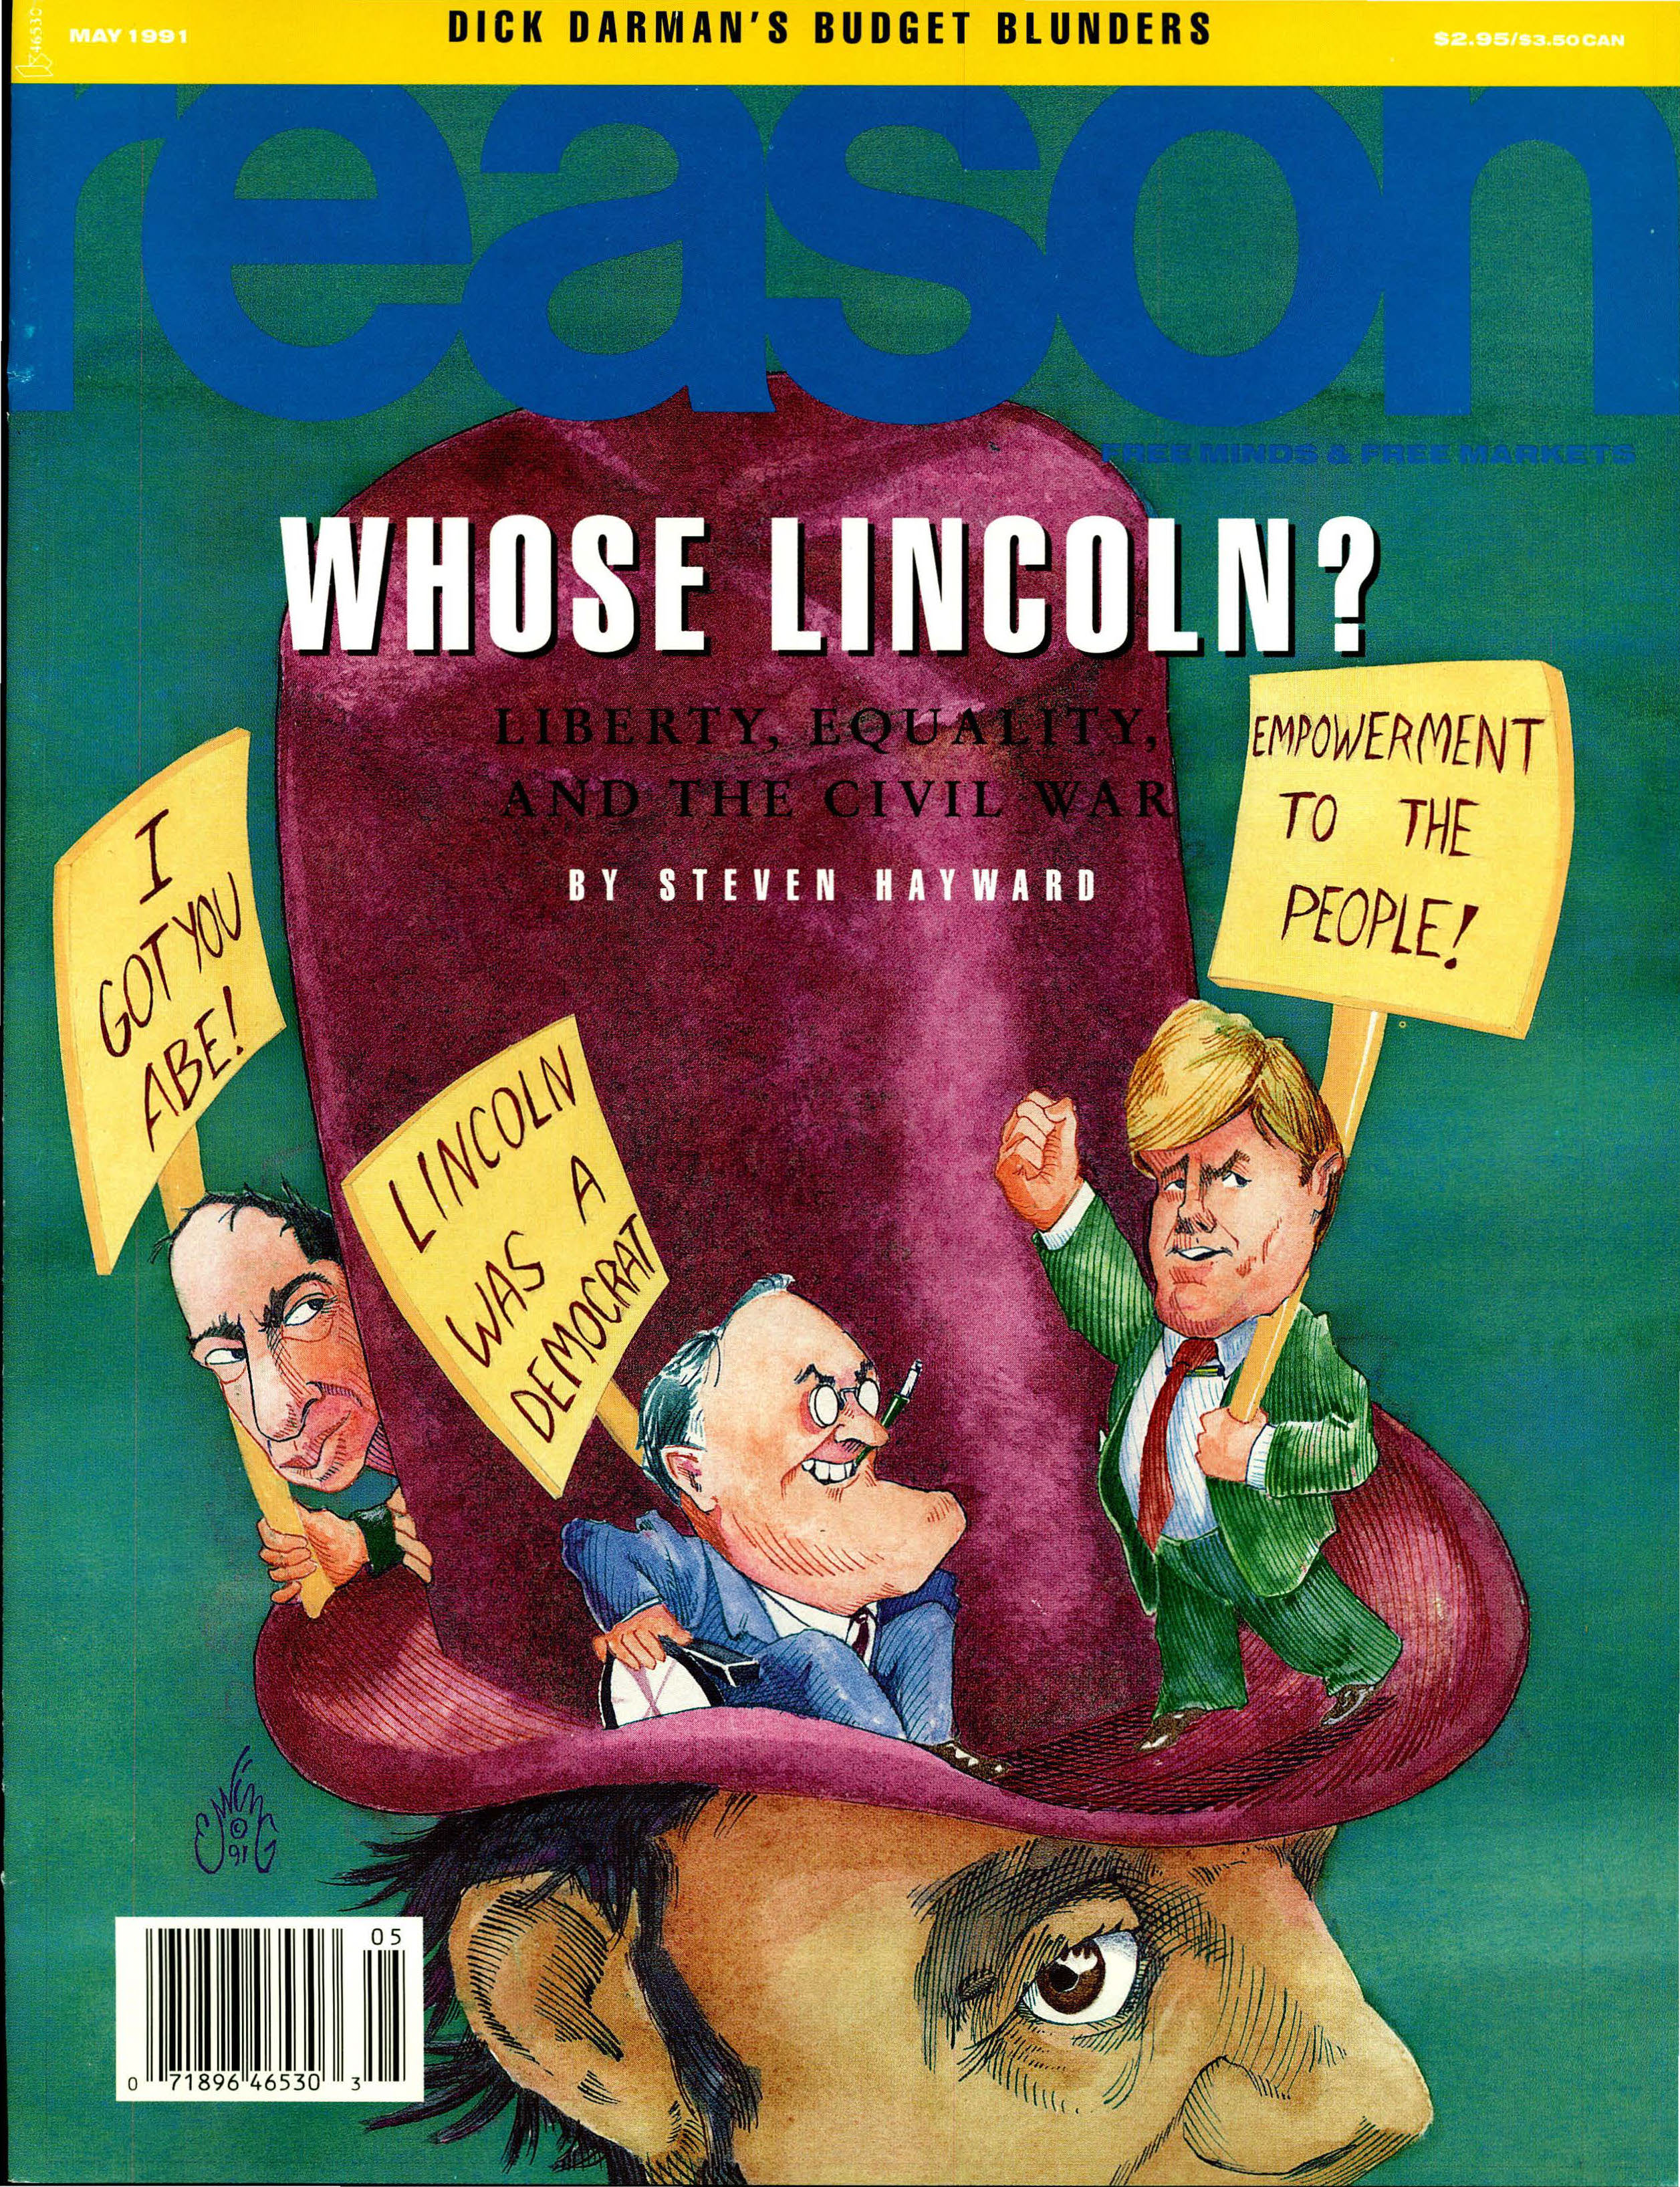 Reason Magazine, May 1991 cover image